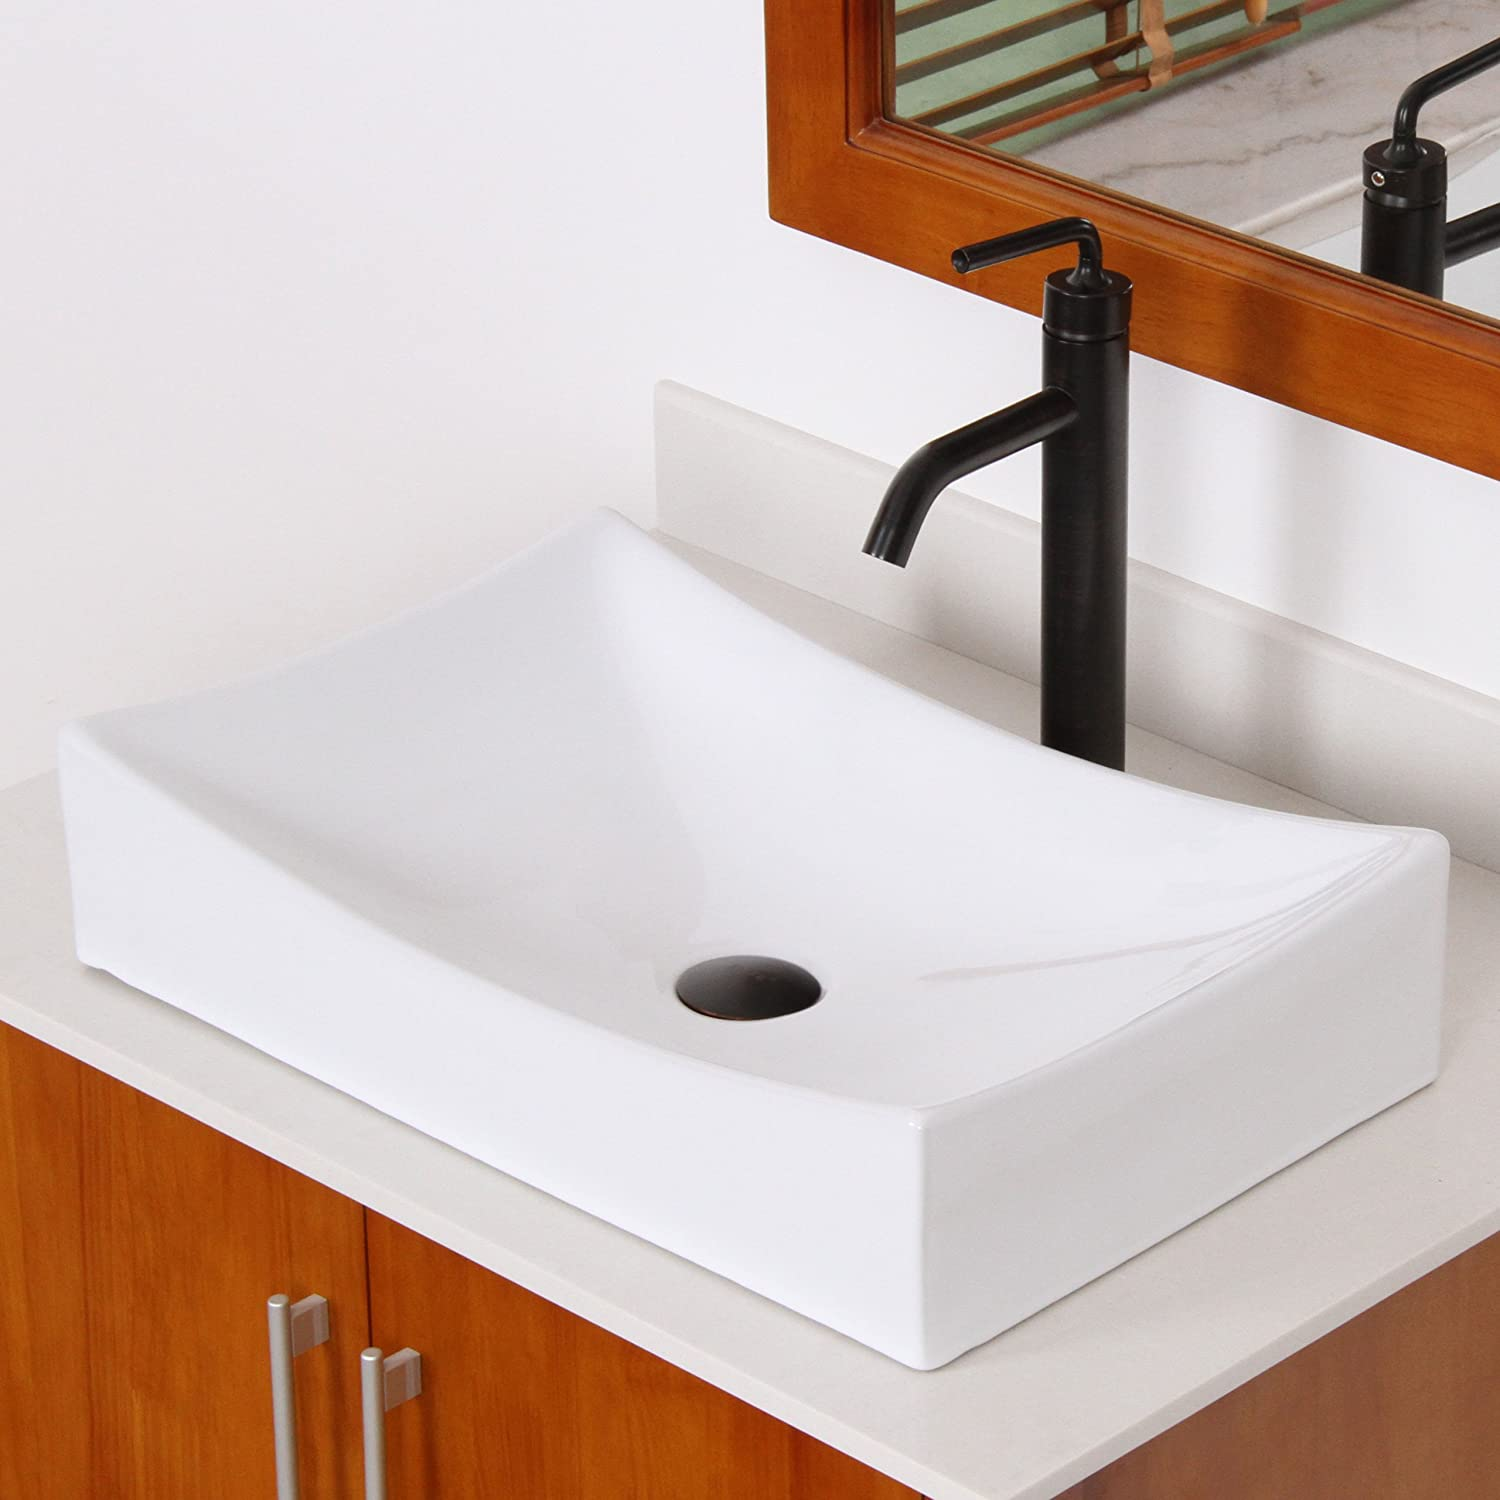 ELITE Bathroom Long Rectangle White Porcelain Ceramic Vessel Sink Basin U0026  Chrome Pop Up Drain     Amazon.com